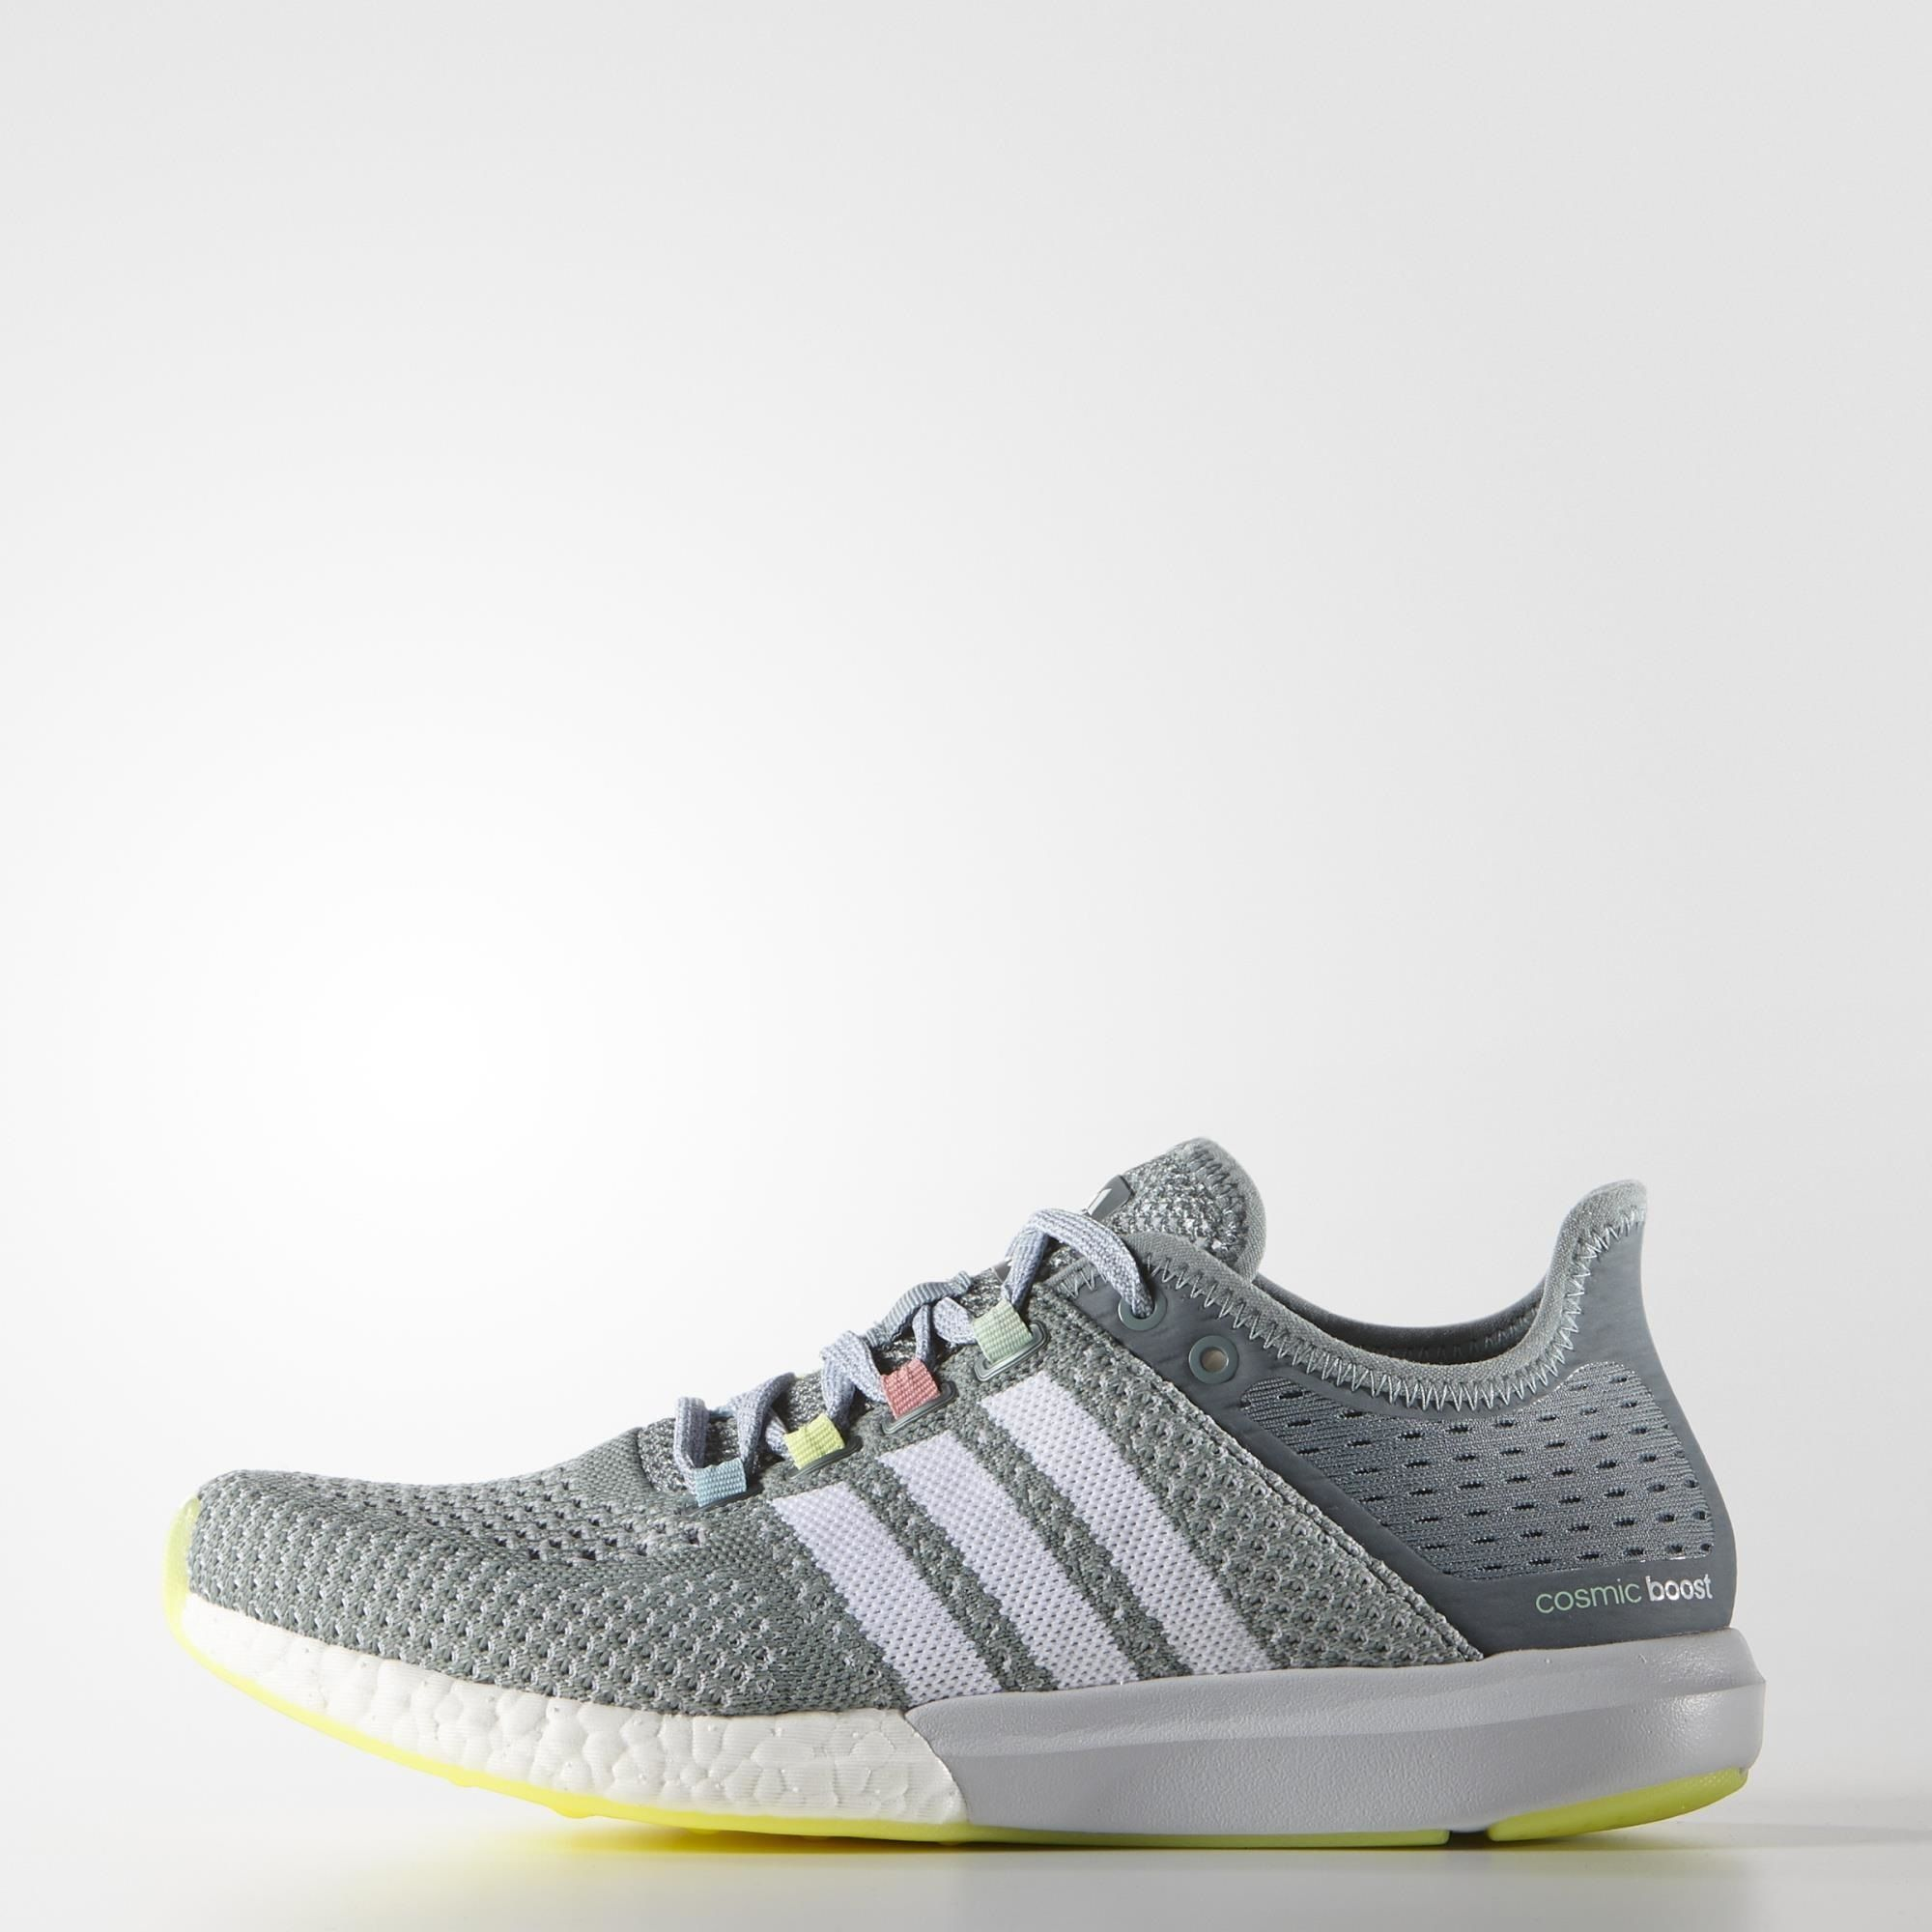 c6a418c12d674d adidas Women s Climachill Cosmic Boost Shoes - Green Earth